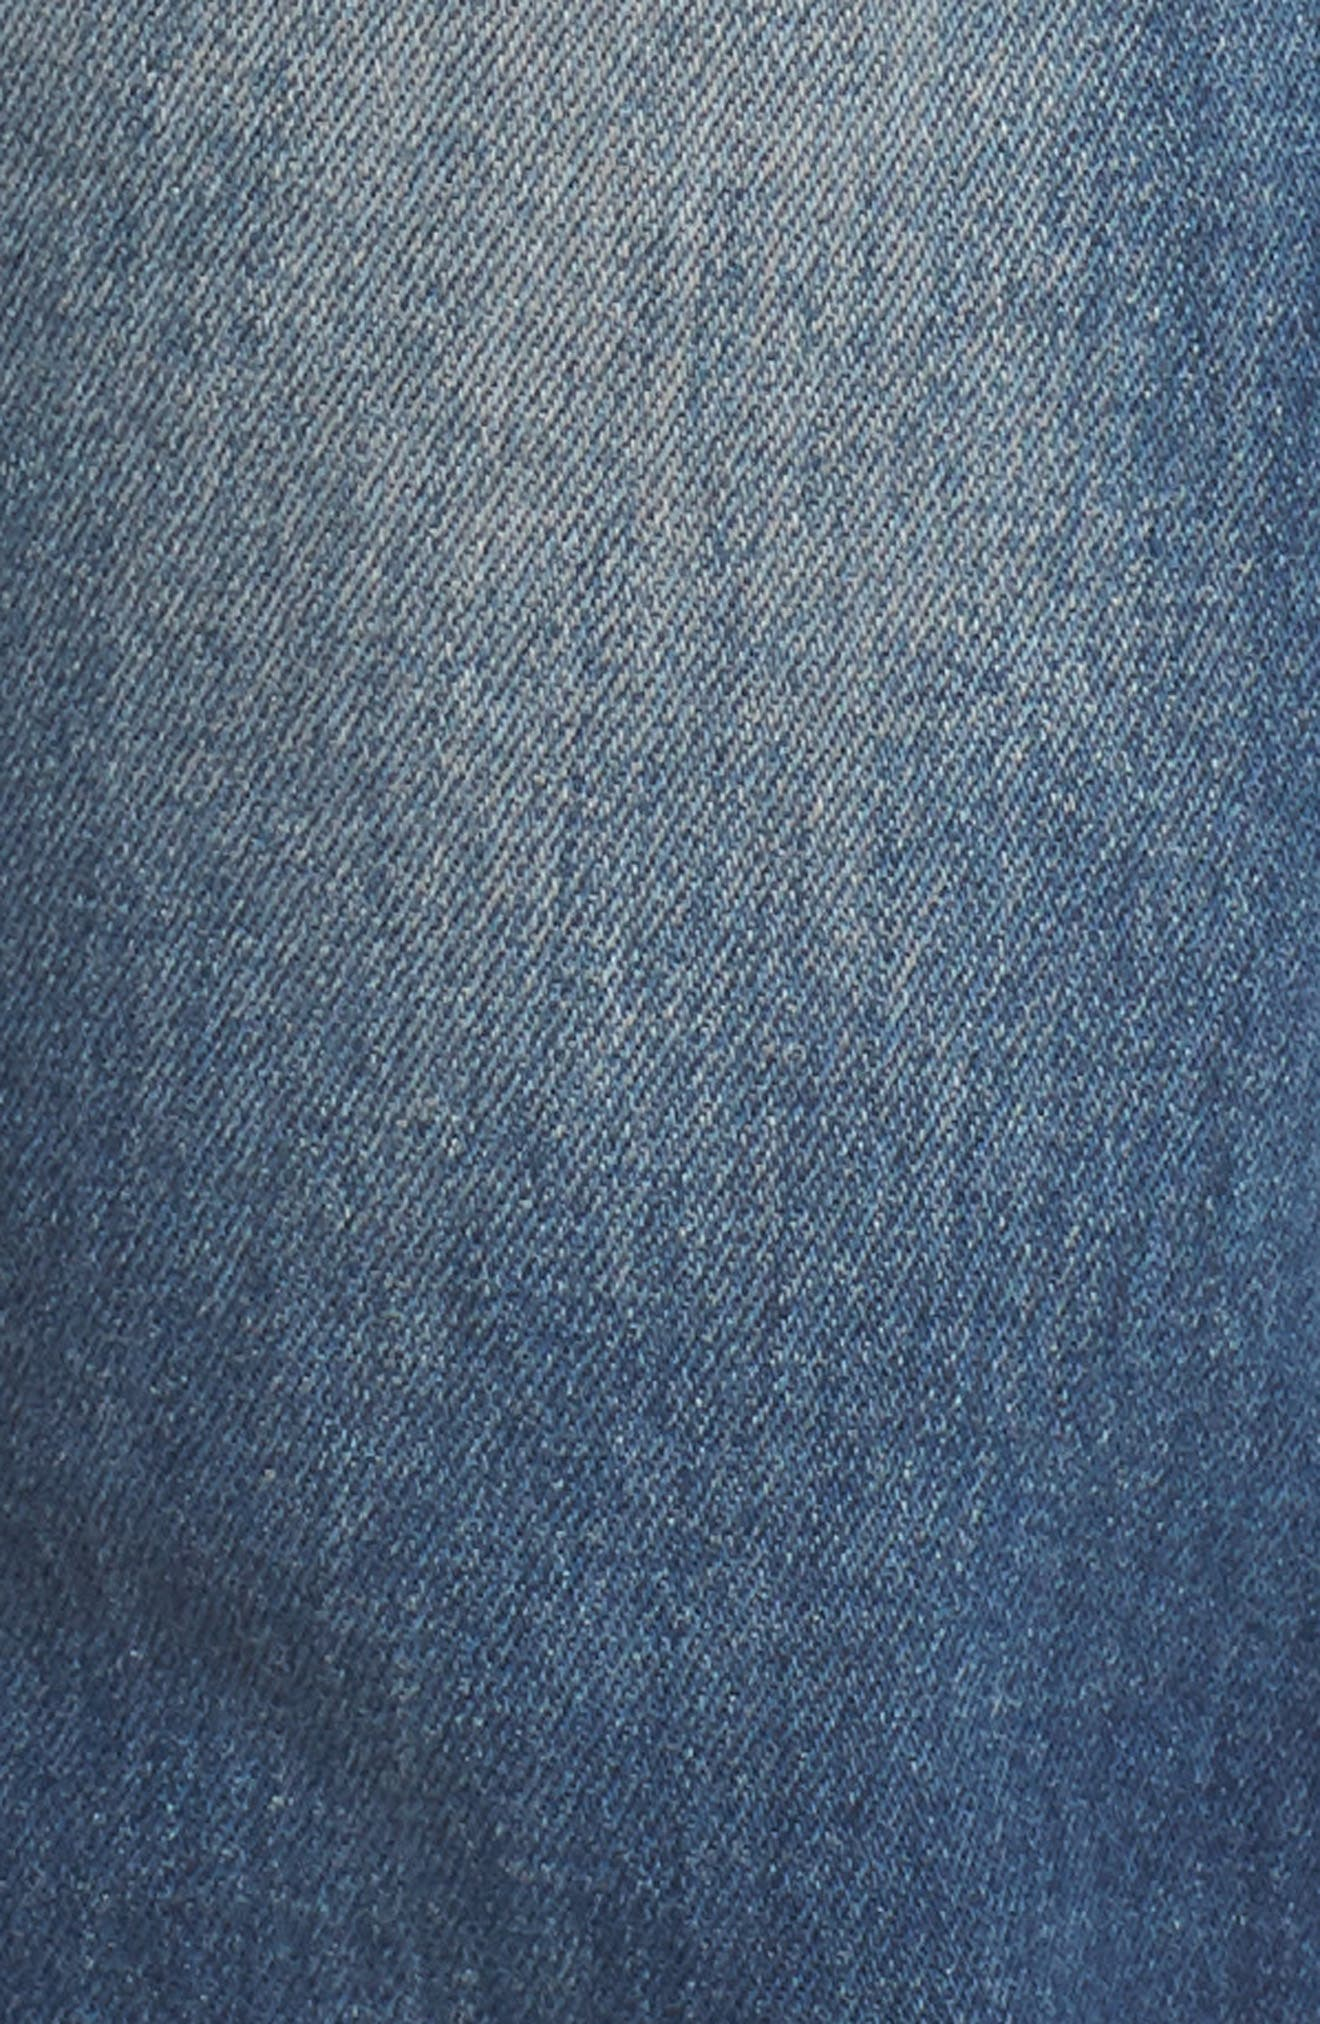 Dylan Skinny Fit Jeans,                             Alternate thumbnail 5, color,                             12 Years Off Ramp